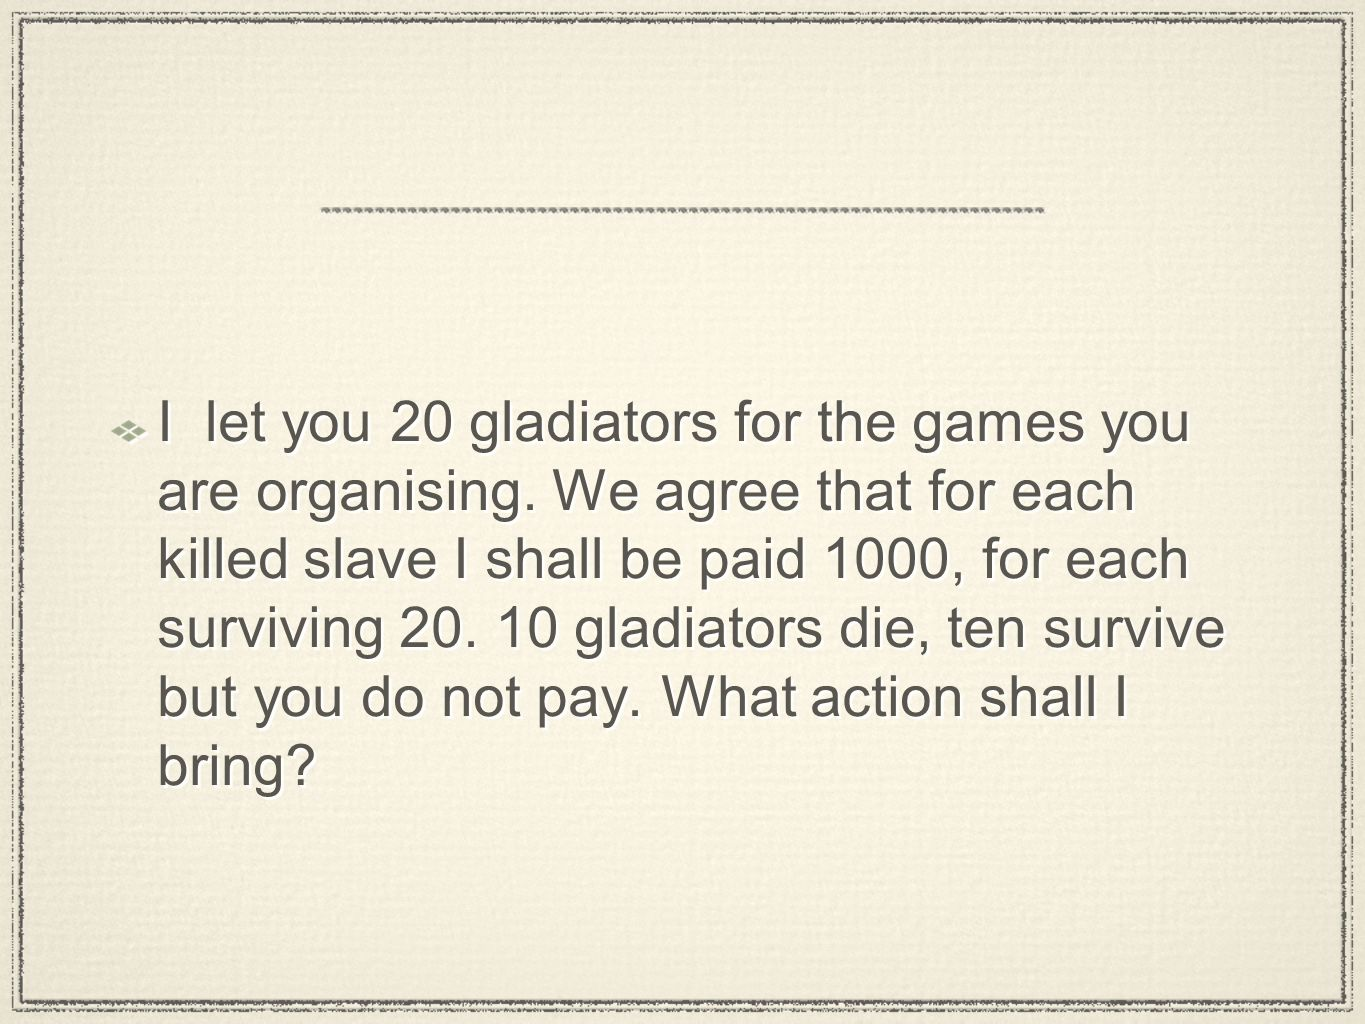 I let you 20 gladiators for the games you are organising. We agree that for each killed slave I shall be paid 1000, for each surviving 20. 10 gladiato